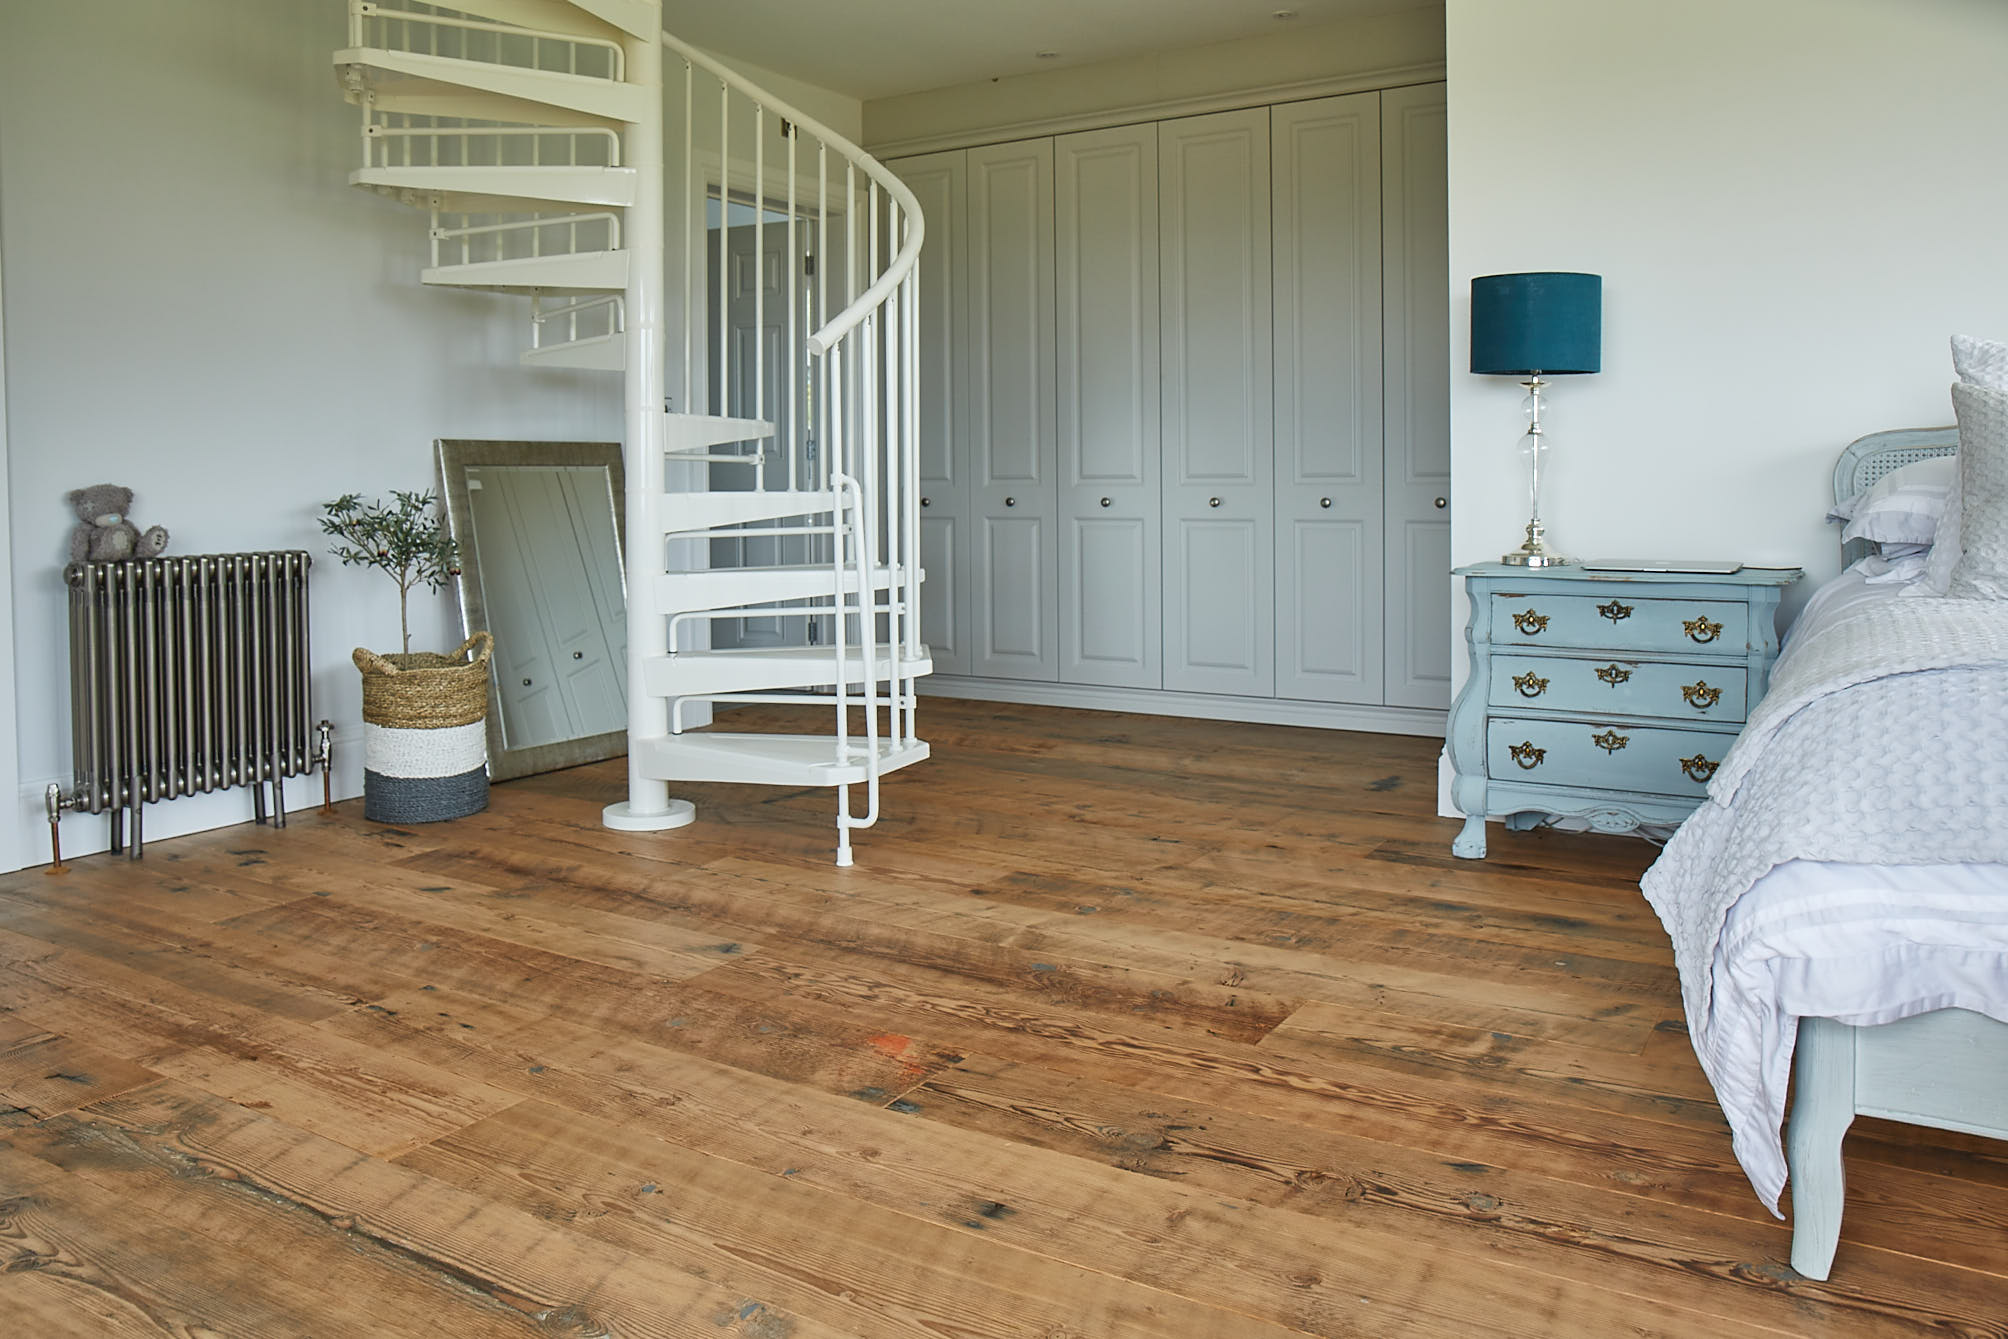 Rustic flooring contrasts with white fitted wardrobes and spiral staircase in bedroom